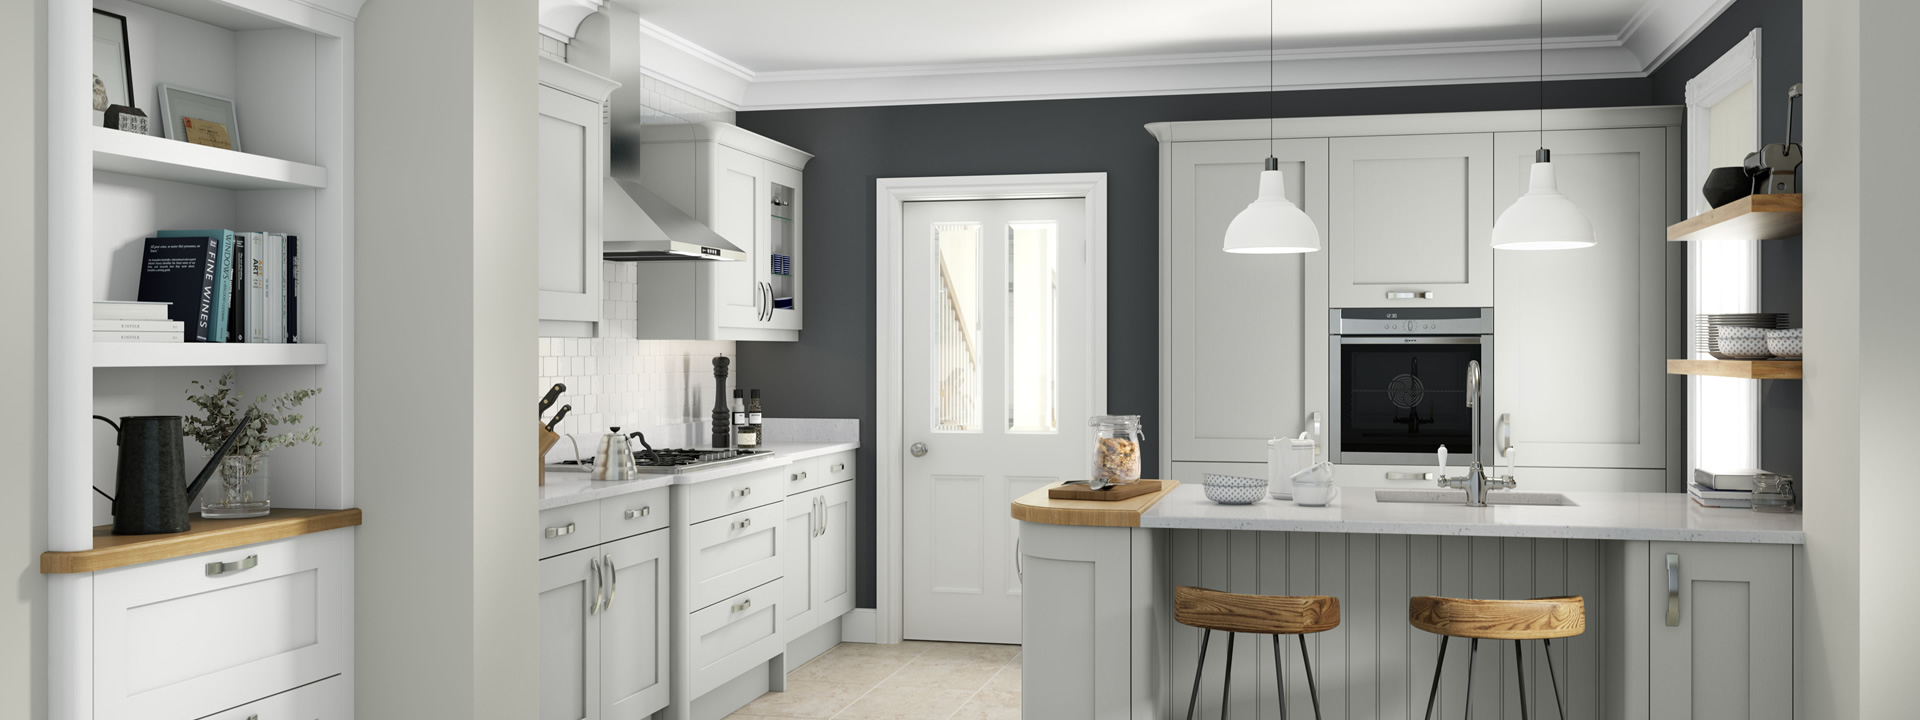 Bespoke Kitchen and Bedrooms - Barnsley, Sheffield and South Yorkshire